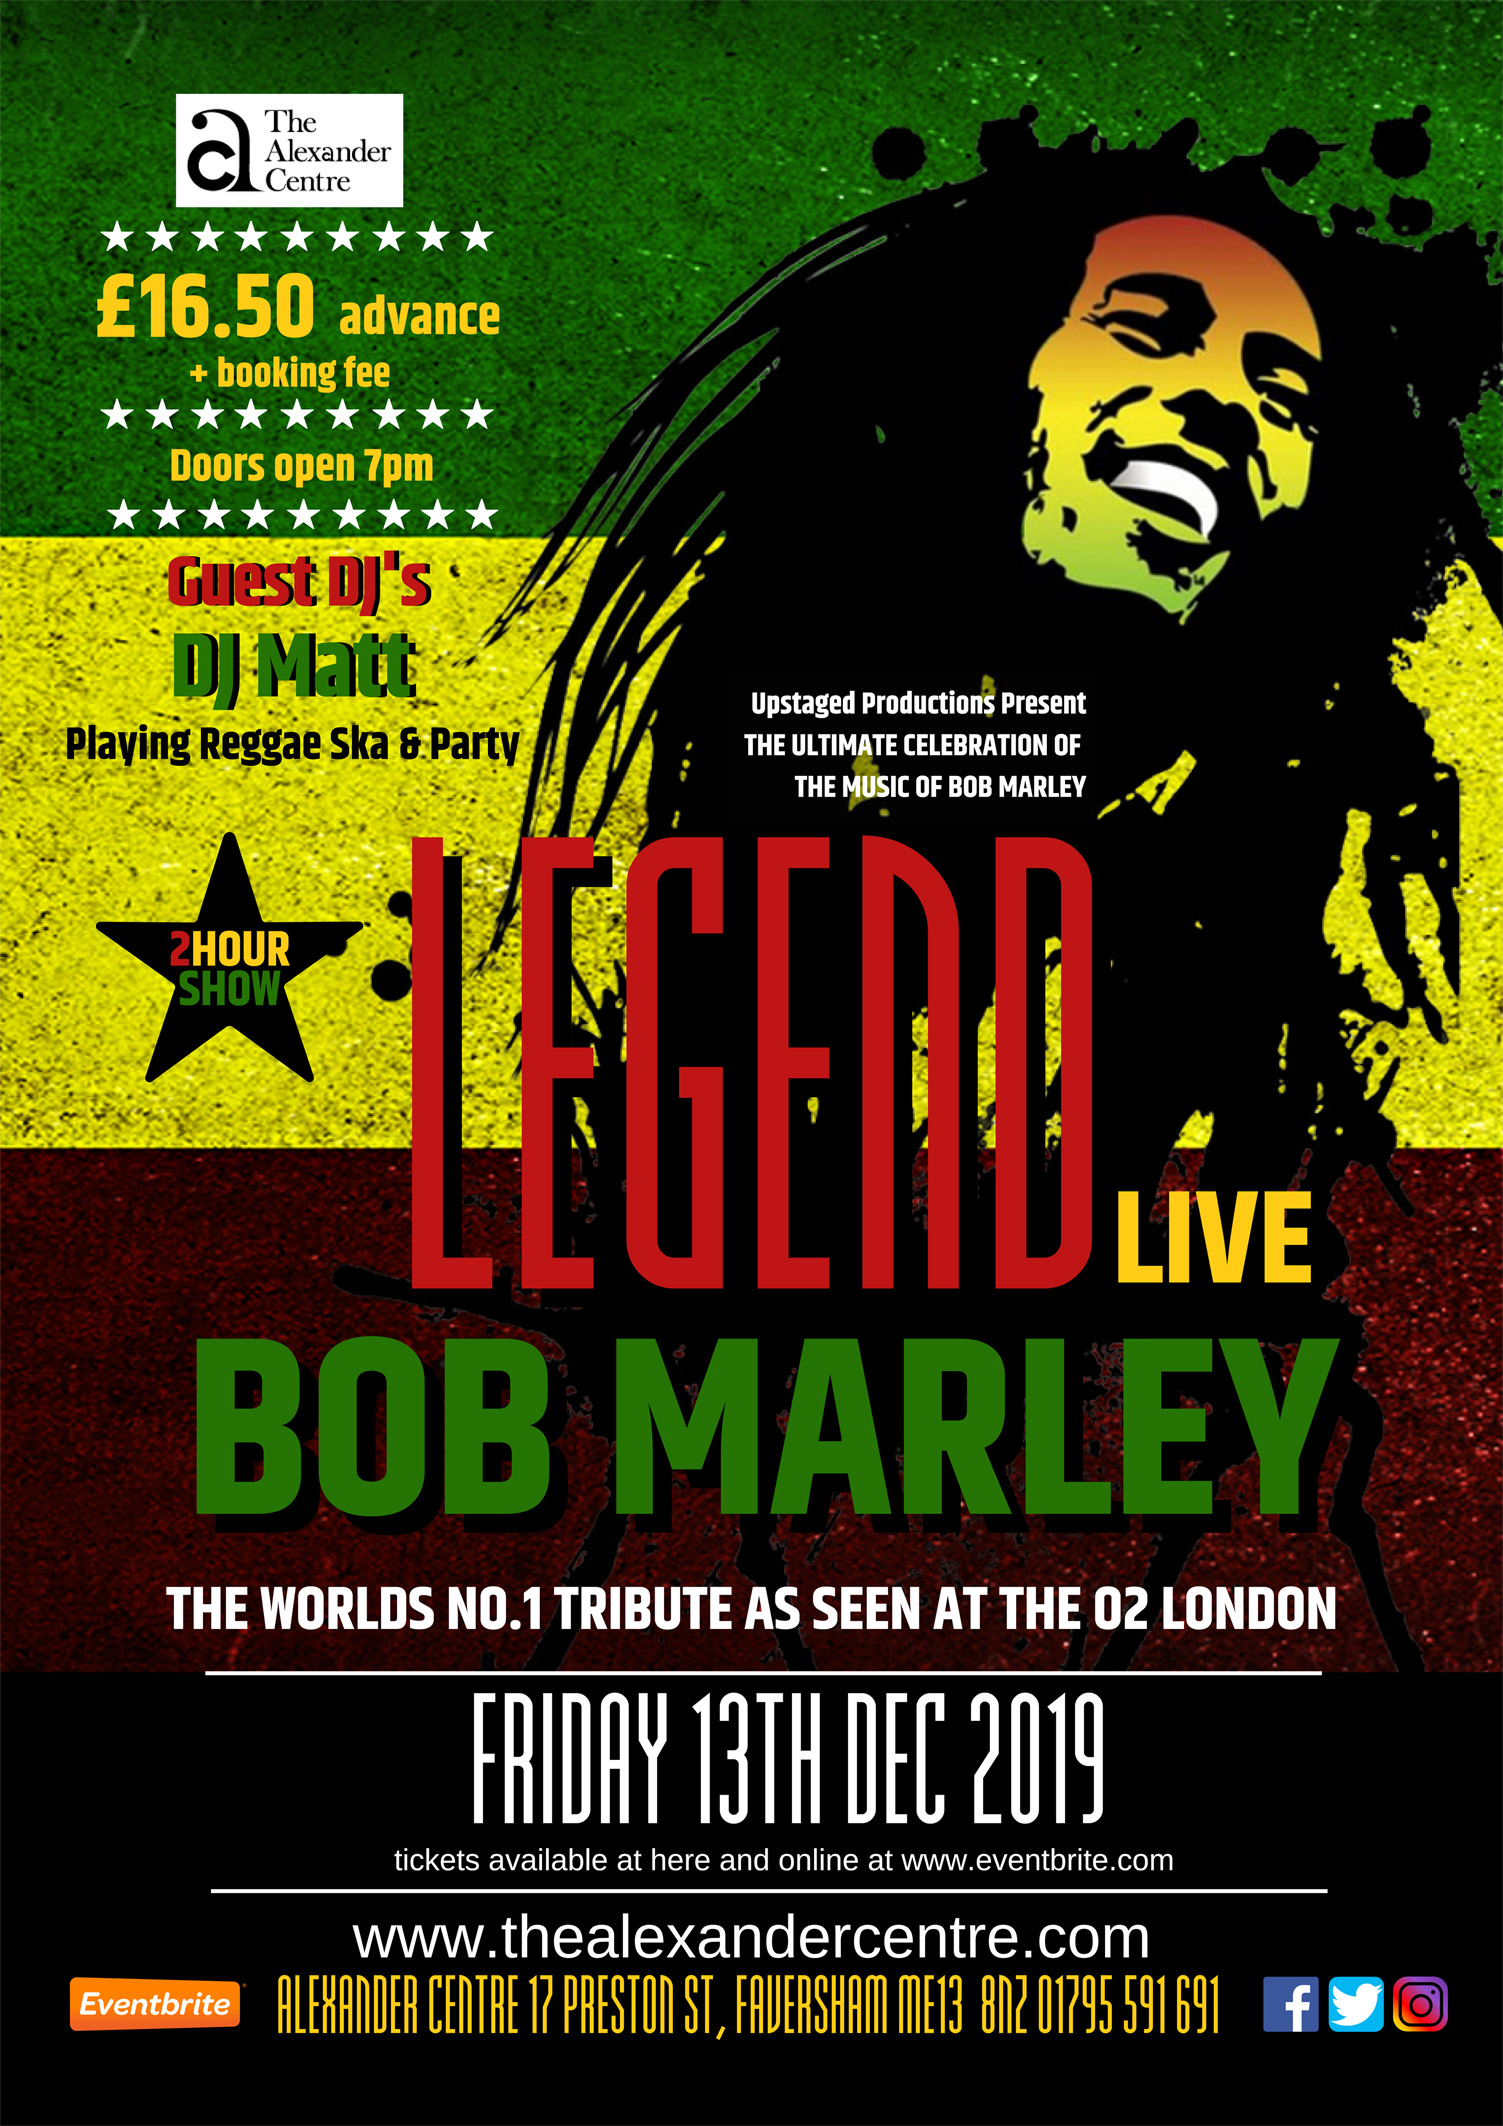 LEGEND LIVE The World's No.1 Tribute to Bob Marley